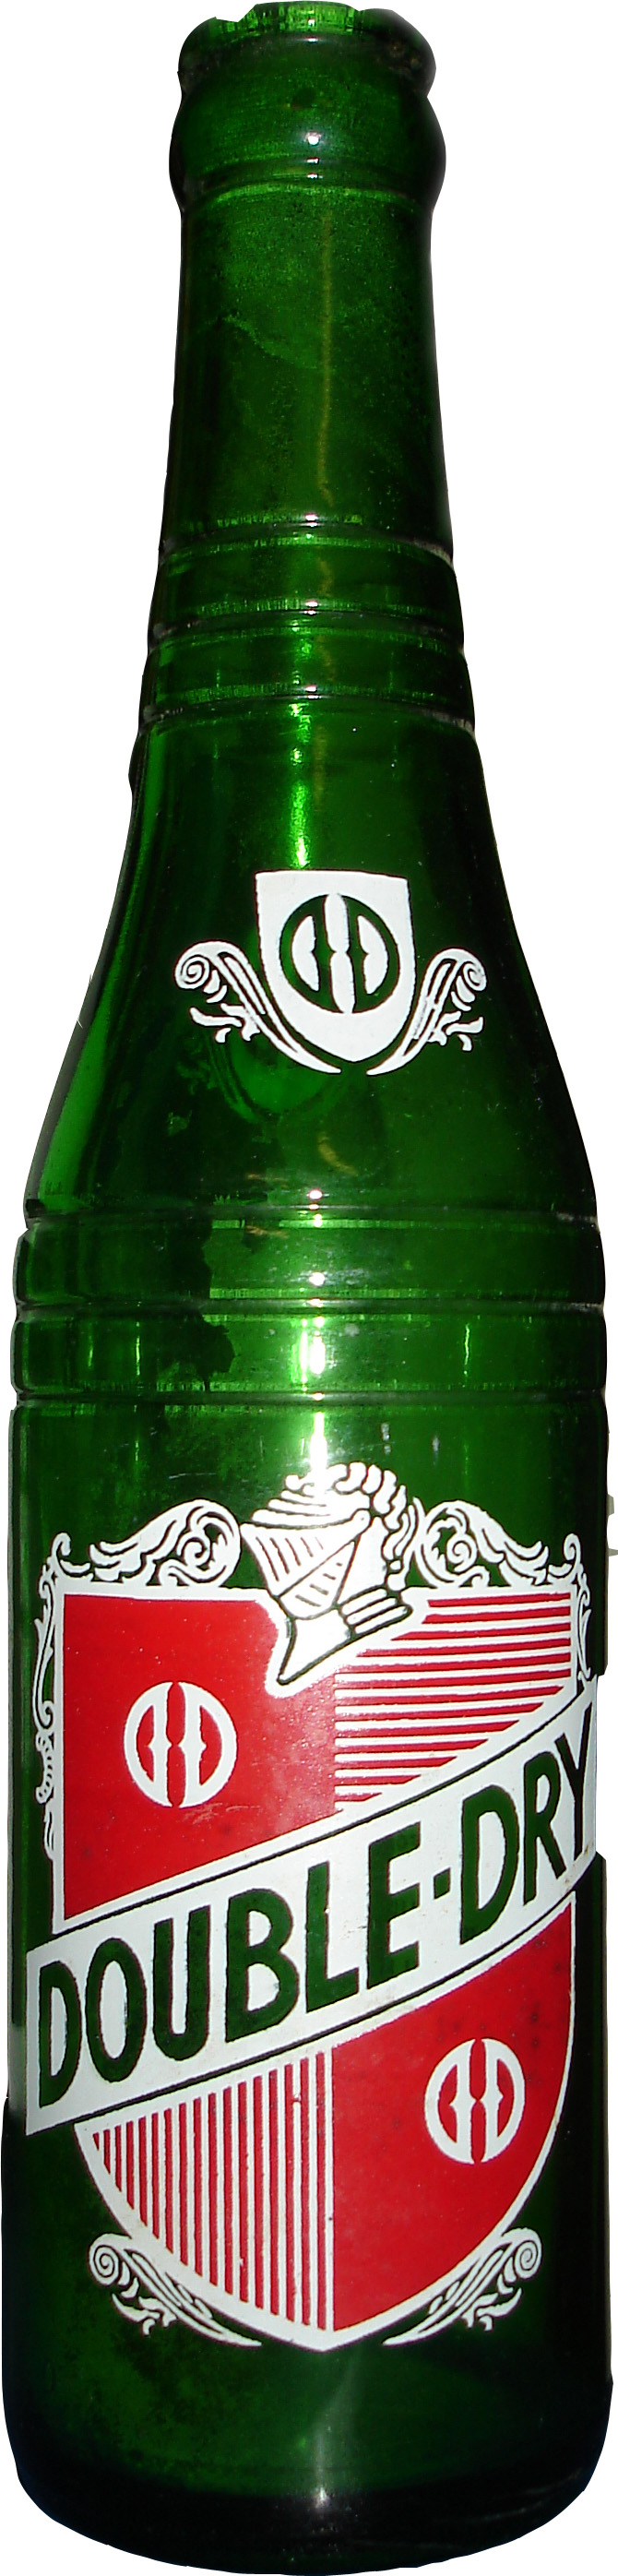 Double Dry Ginger Ale Soda Bottle